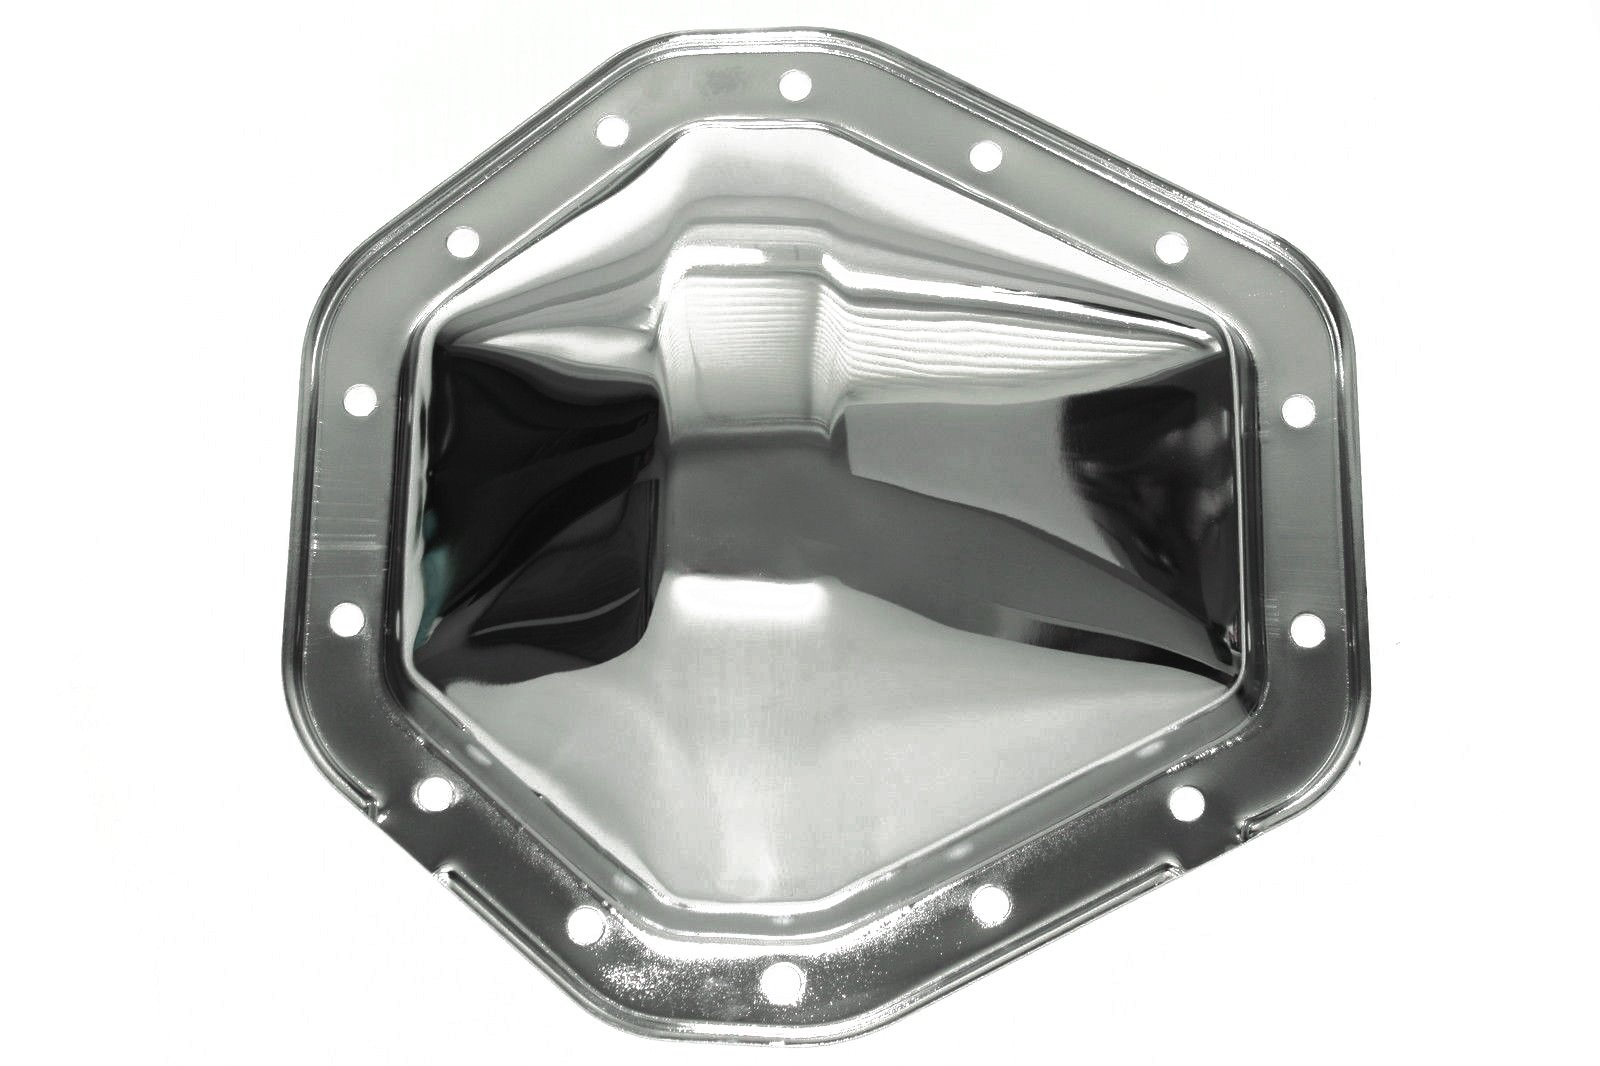 Chrome Chevy / GMC Truck 14 Bolt Rear End Differential Cover GM